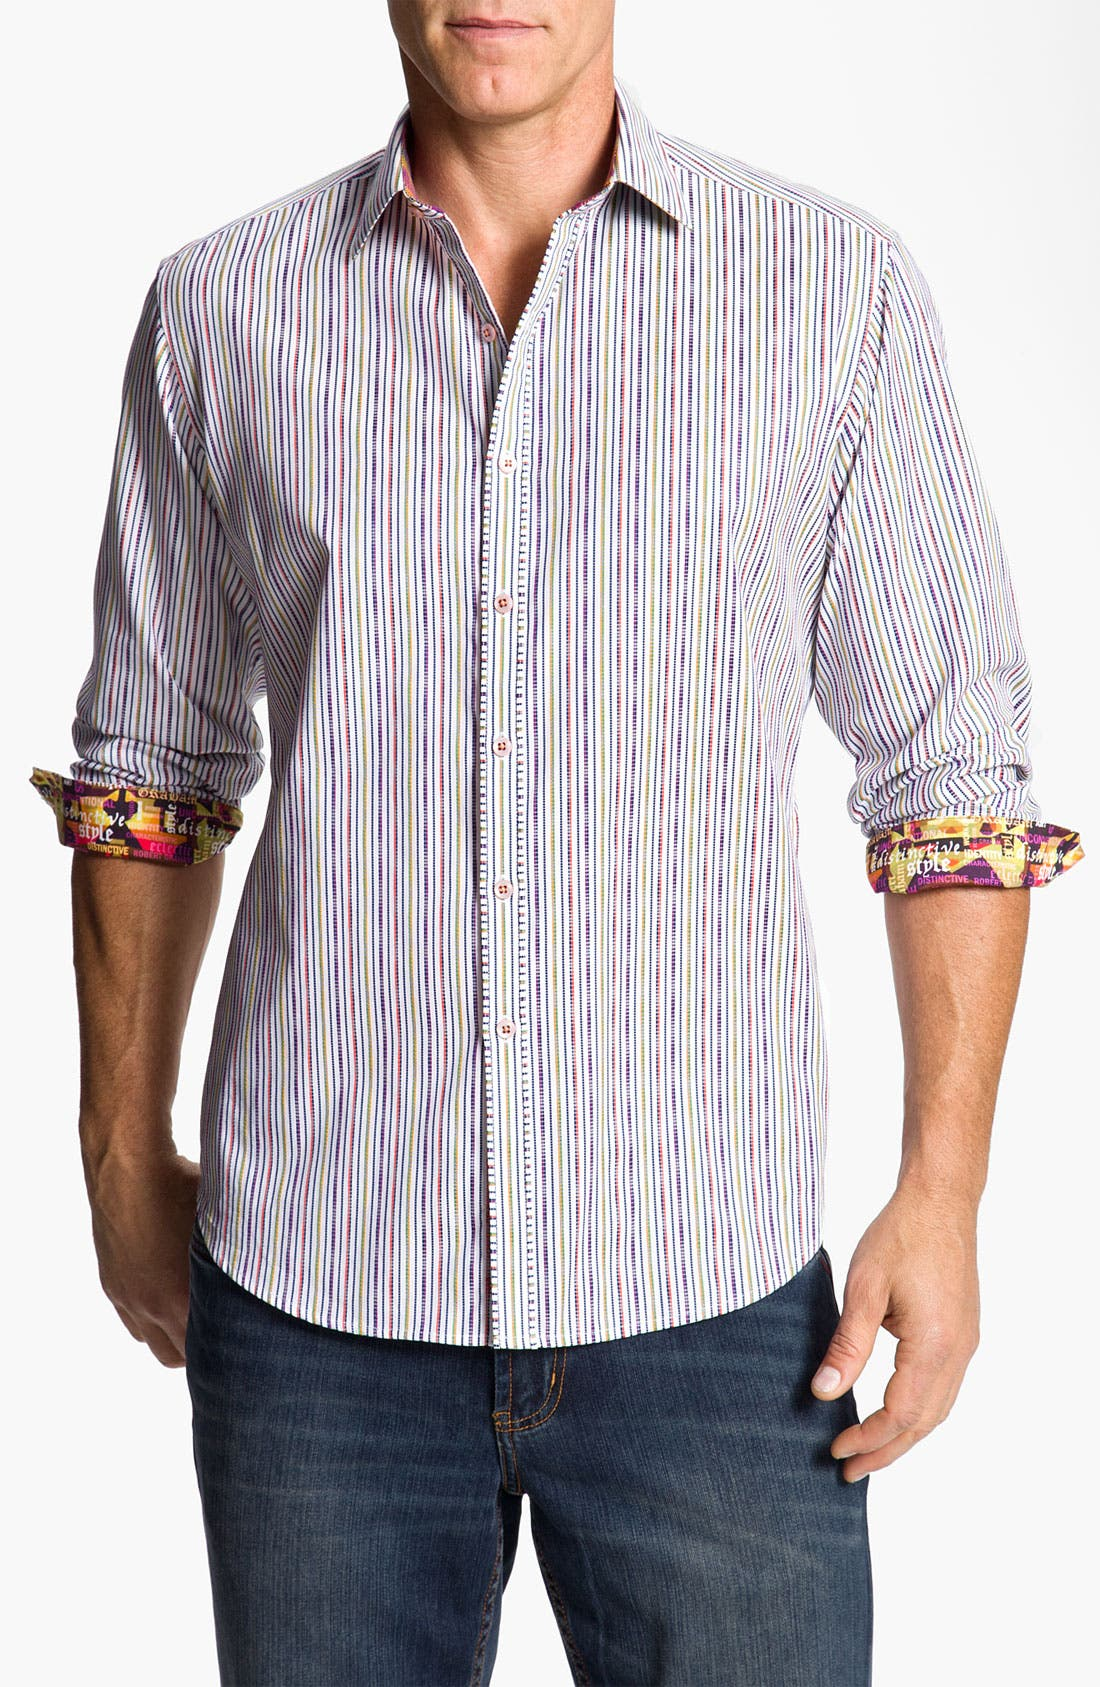 Alternate Image 1 Selected - Robert Graham 'Lemans' Sport Shirt